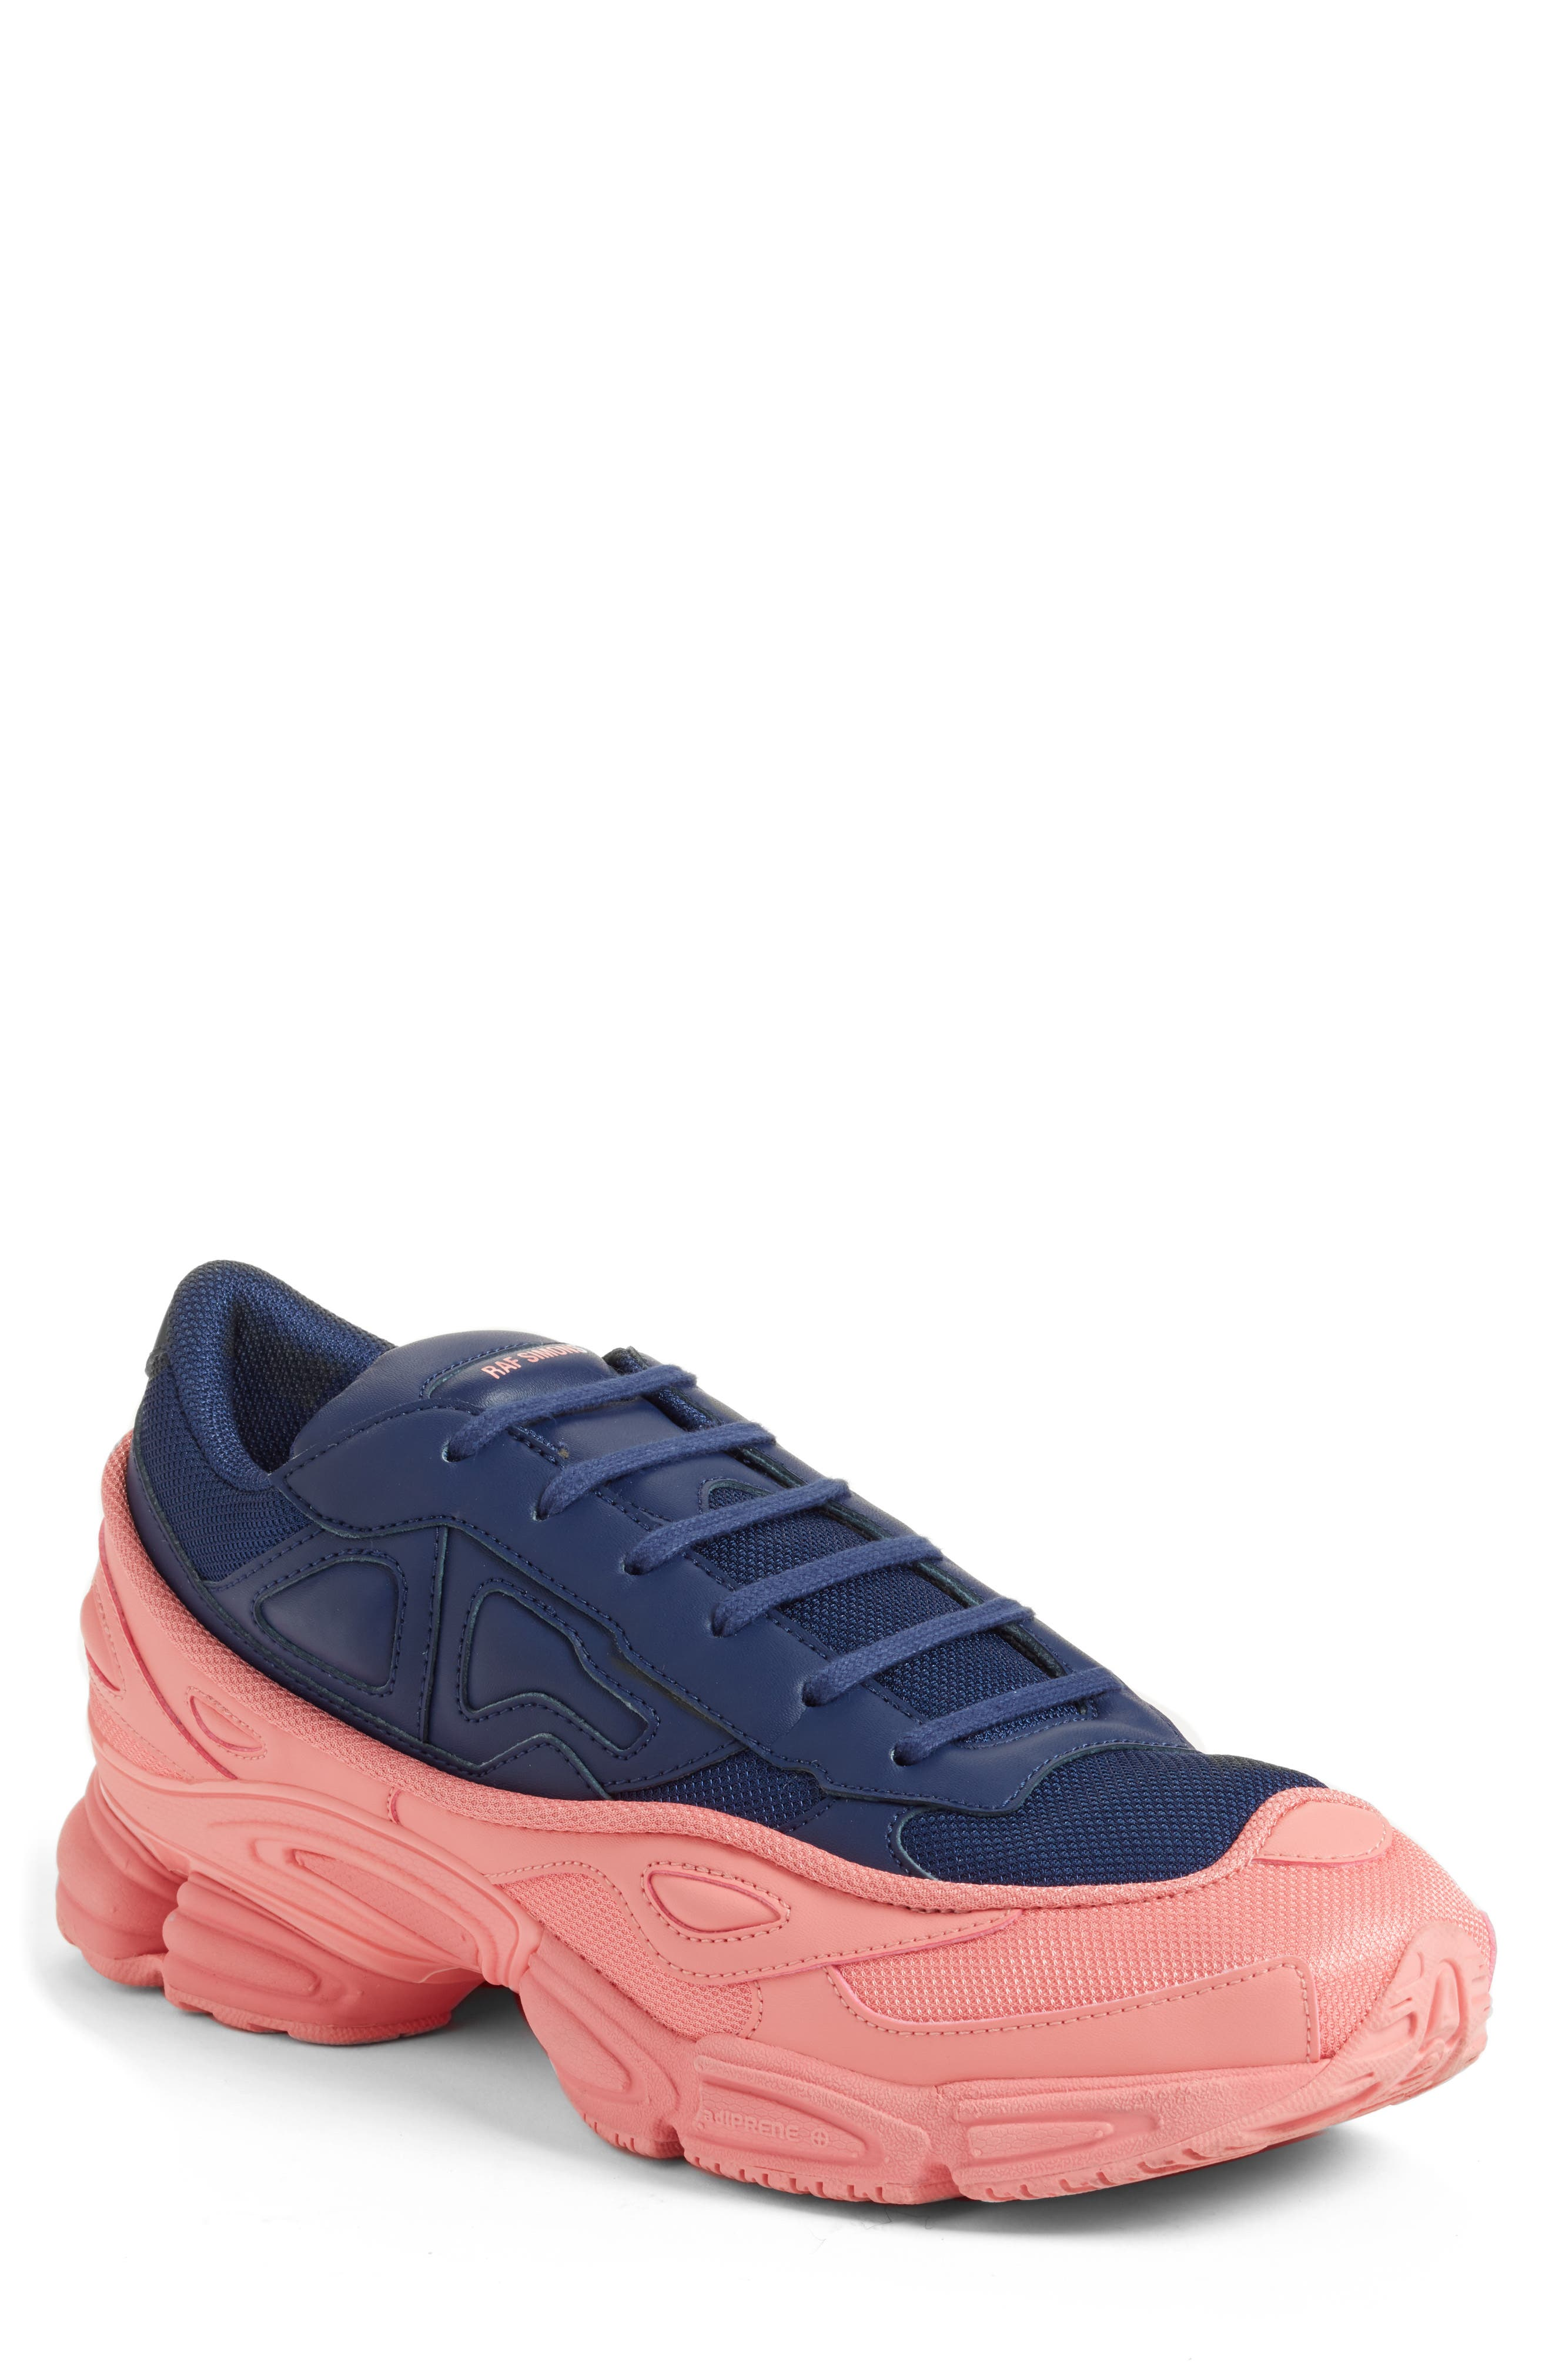 adidas by Raf Simons Ozweego III Sneaker,                             Main thumbnail 1, color,                             TACTILE ROSE/ DARK BLUE